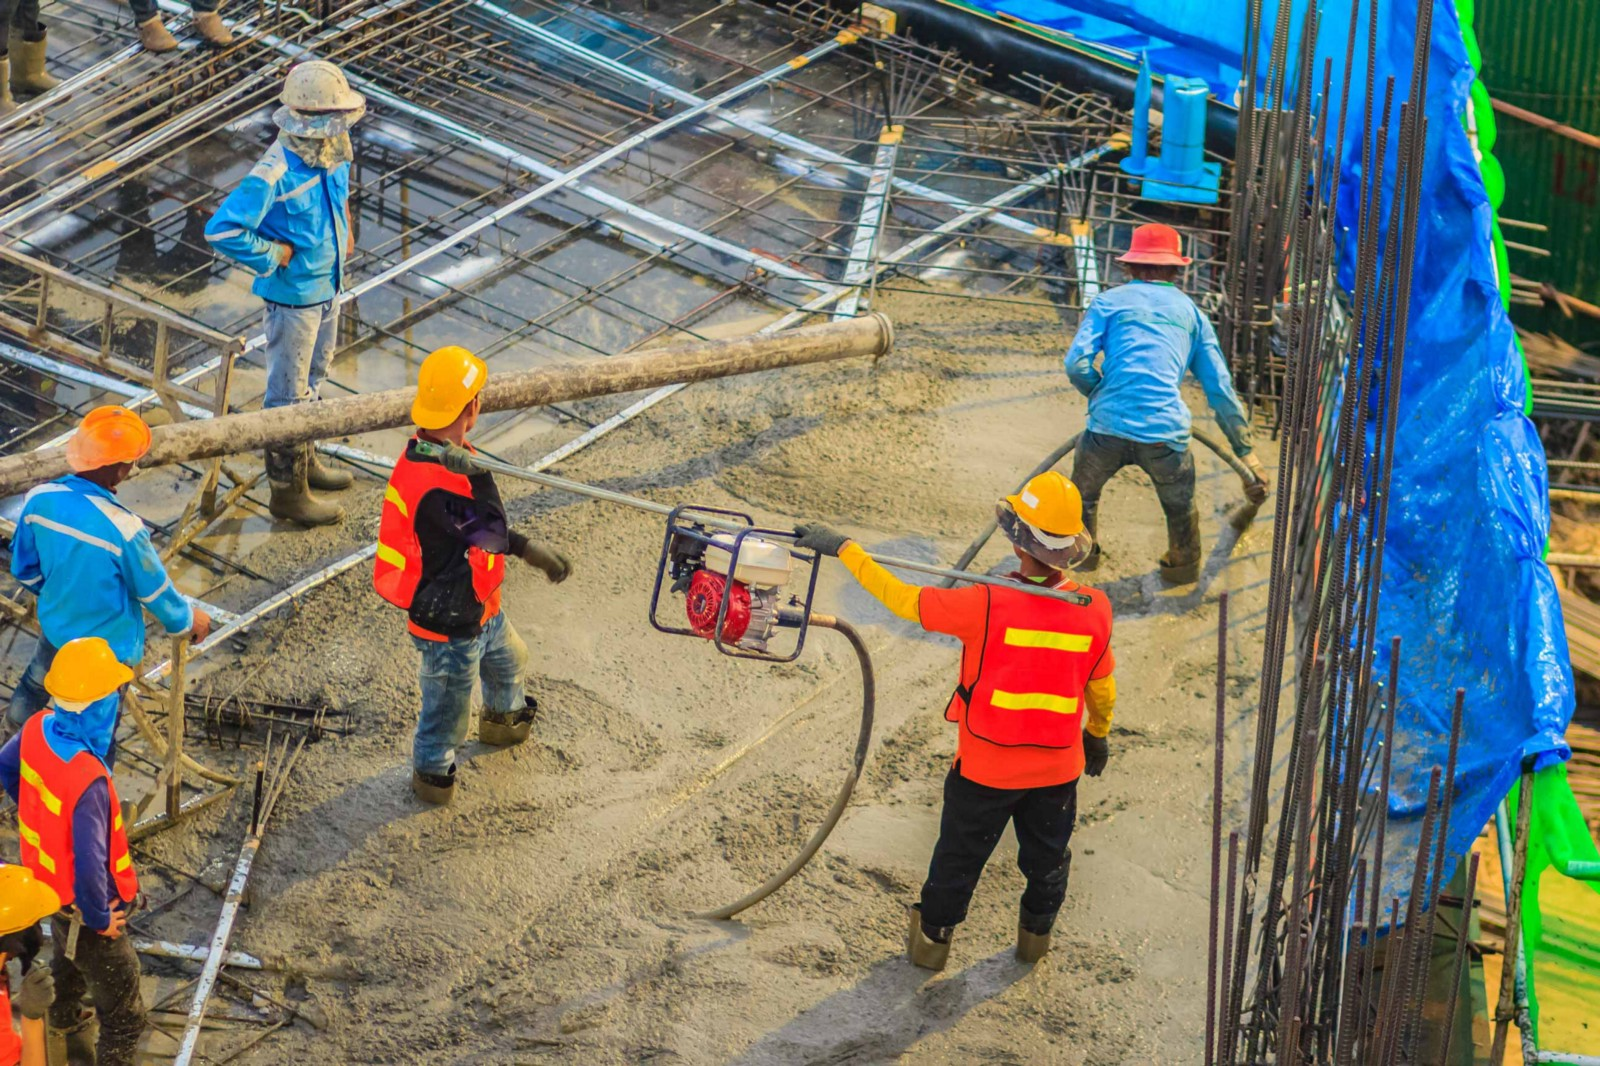 Health And Safety Fines On Building Site